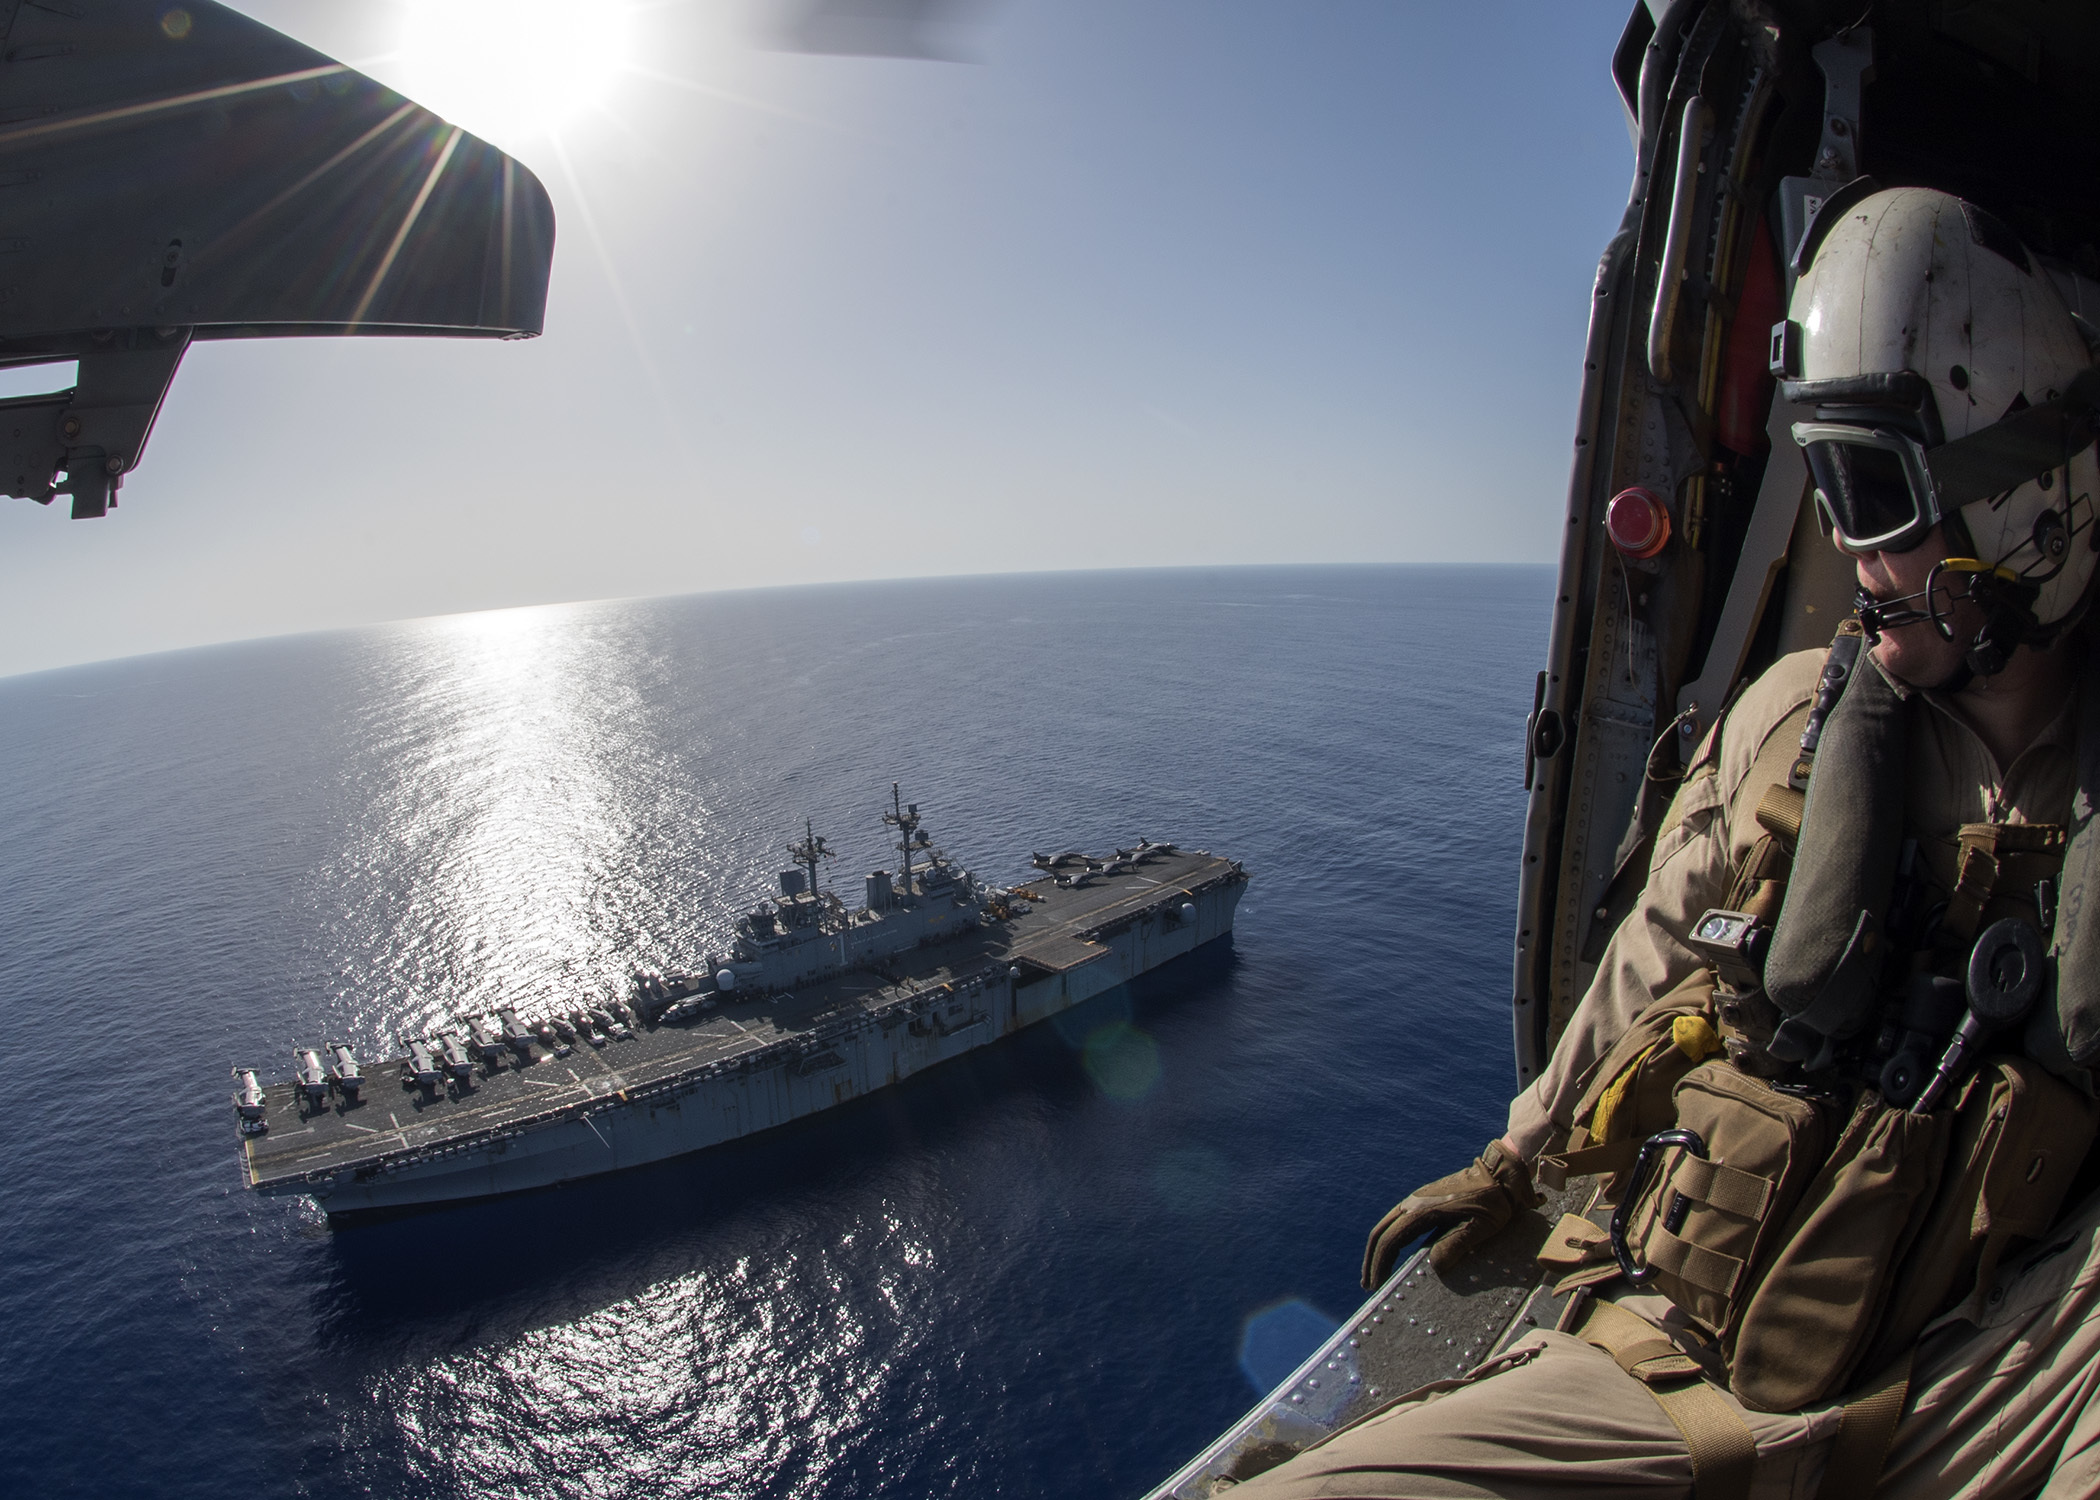 Petty Officer 1st Class Matthew Estep watches the amphibious assault ship USS Wasp (LHD 1) transit the Mediterranean Sea. US Navy photo.